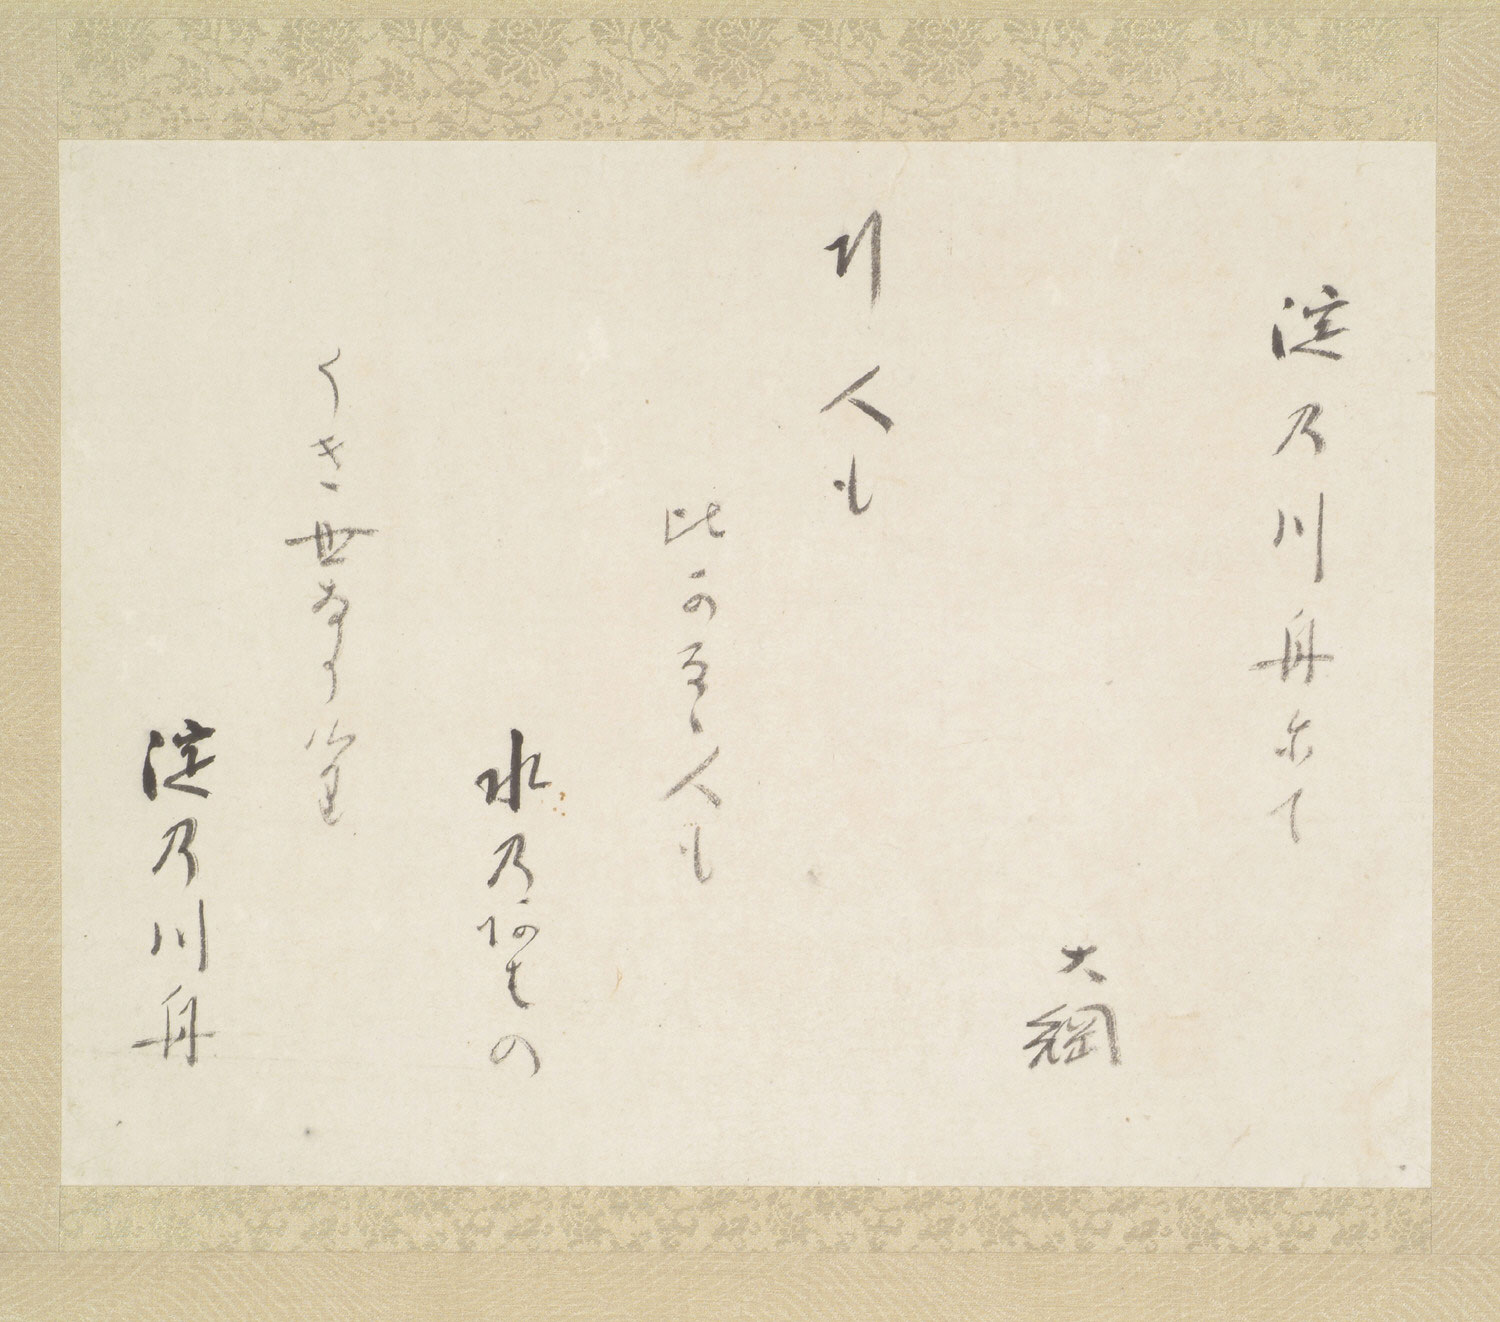 Calligraphy of a Japanese Poem